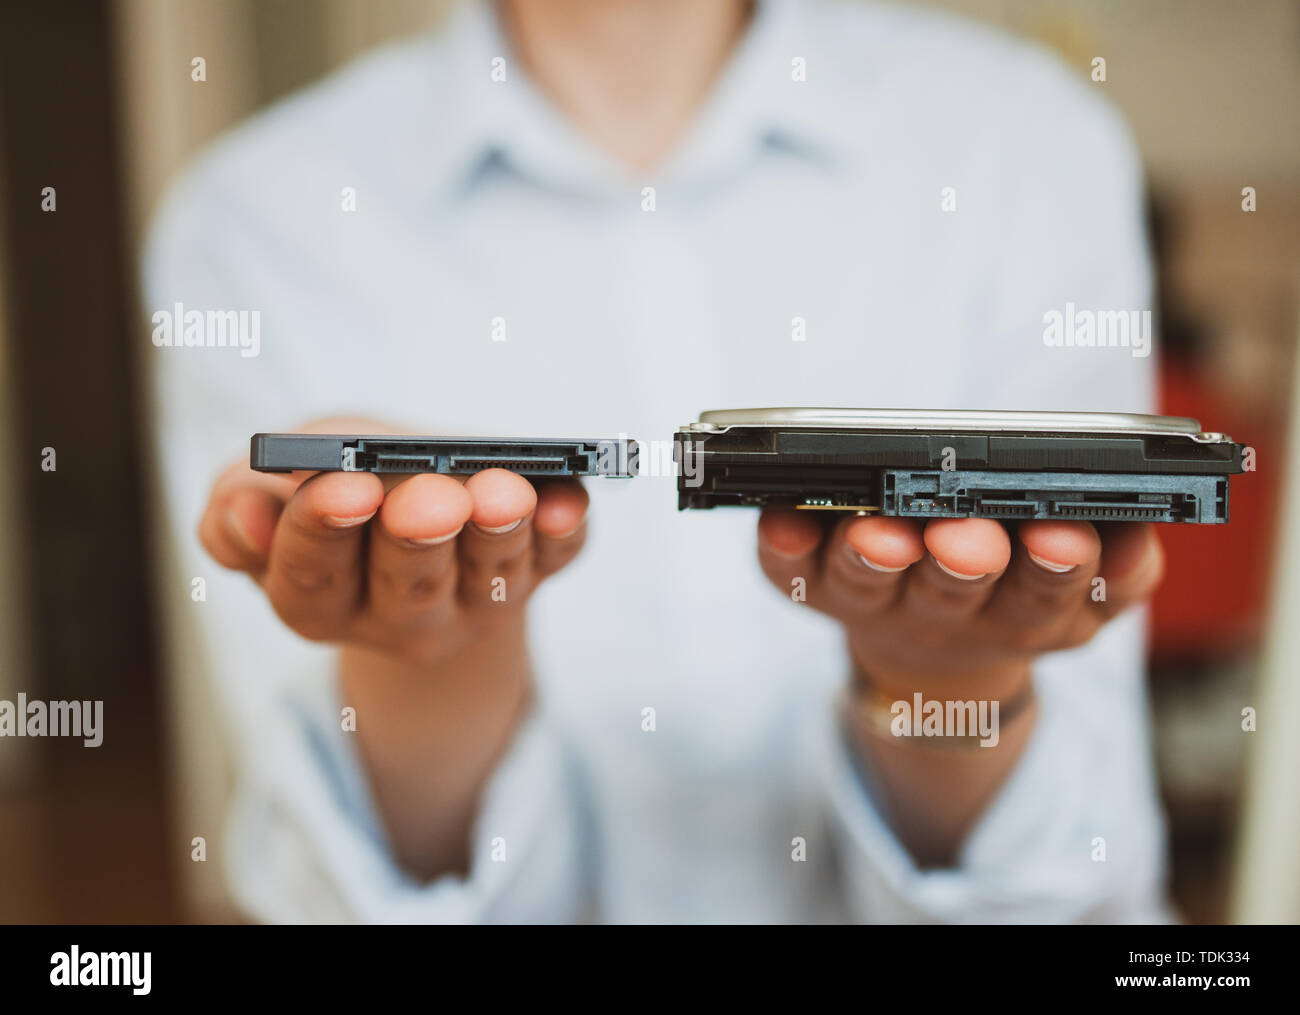 IT woman holding presenting two different generations of computer disks HDD hard disk drive and SSD solid state drive - offering them to viewer - Stock Image